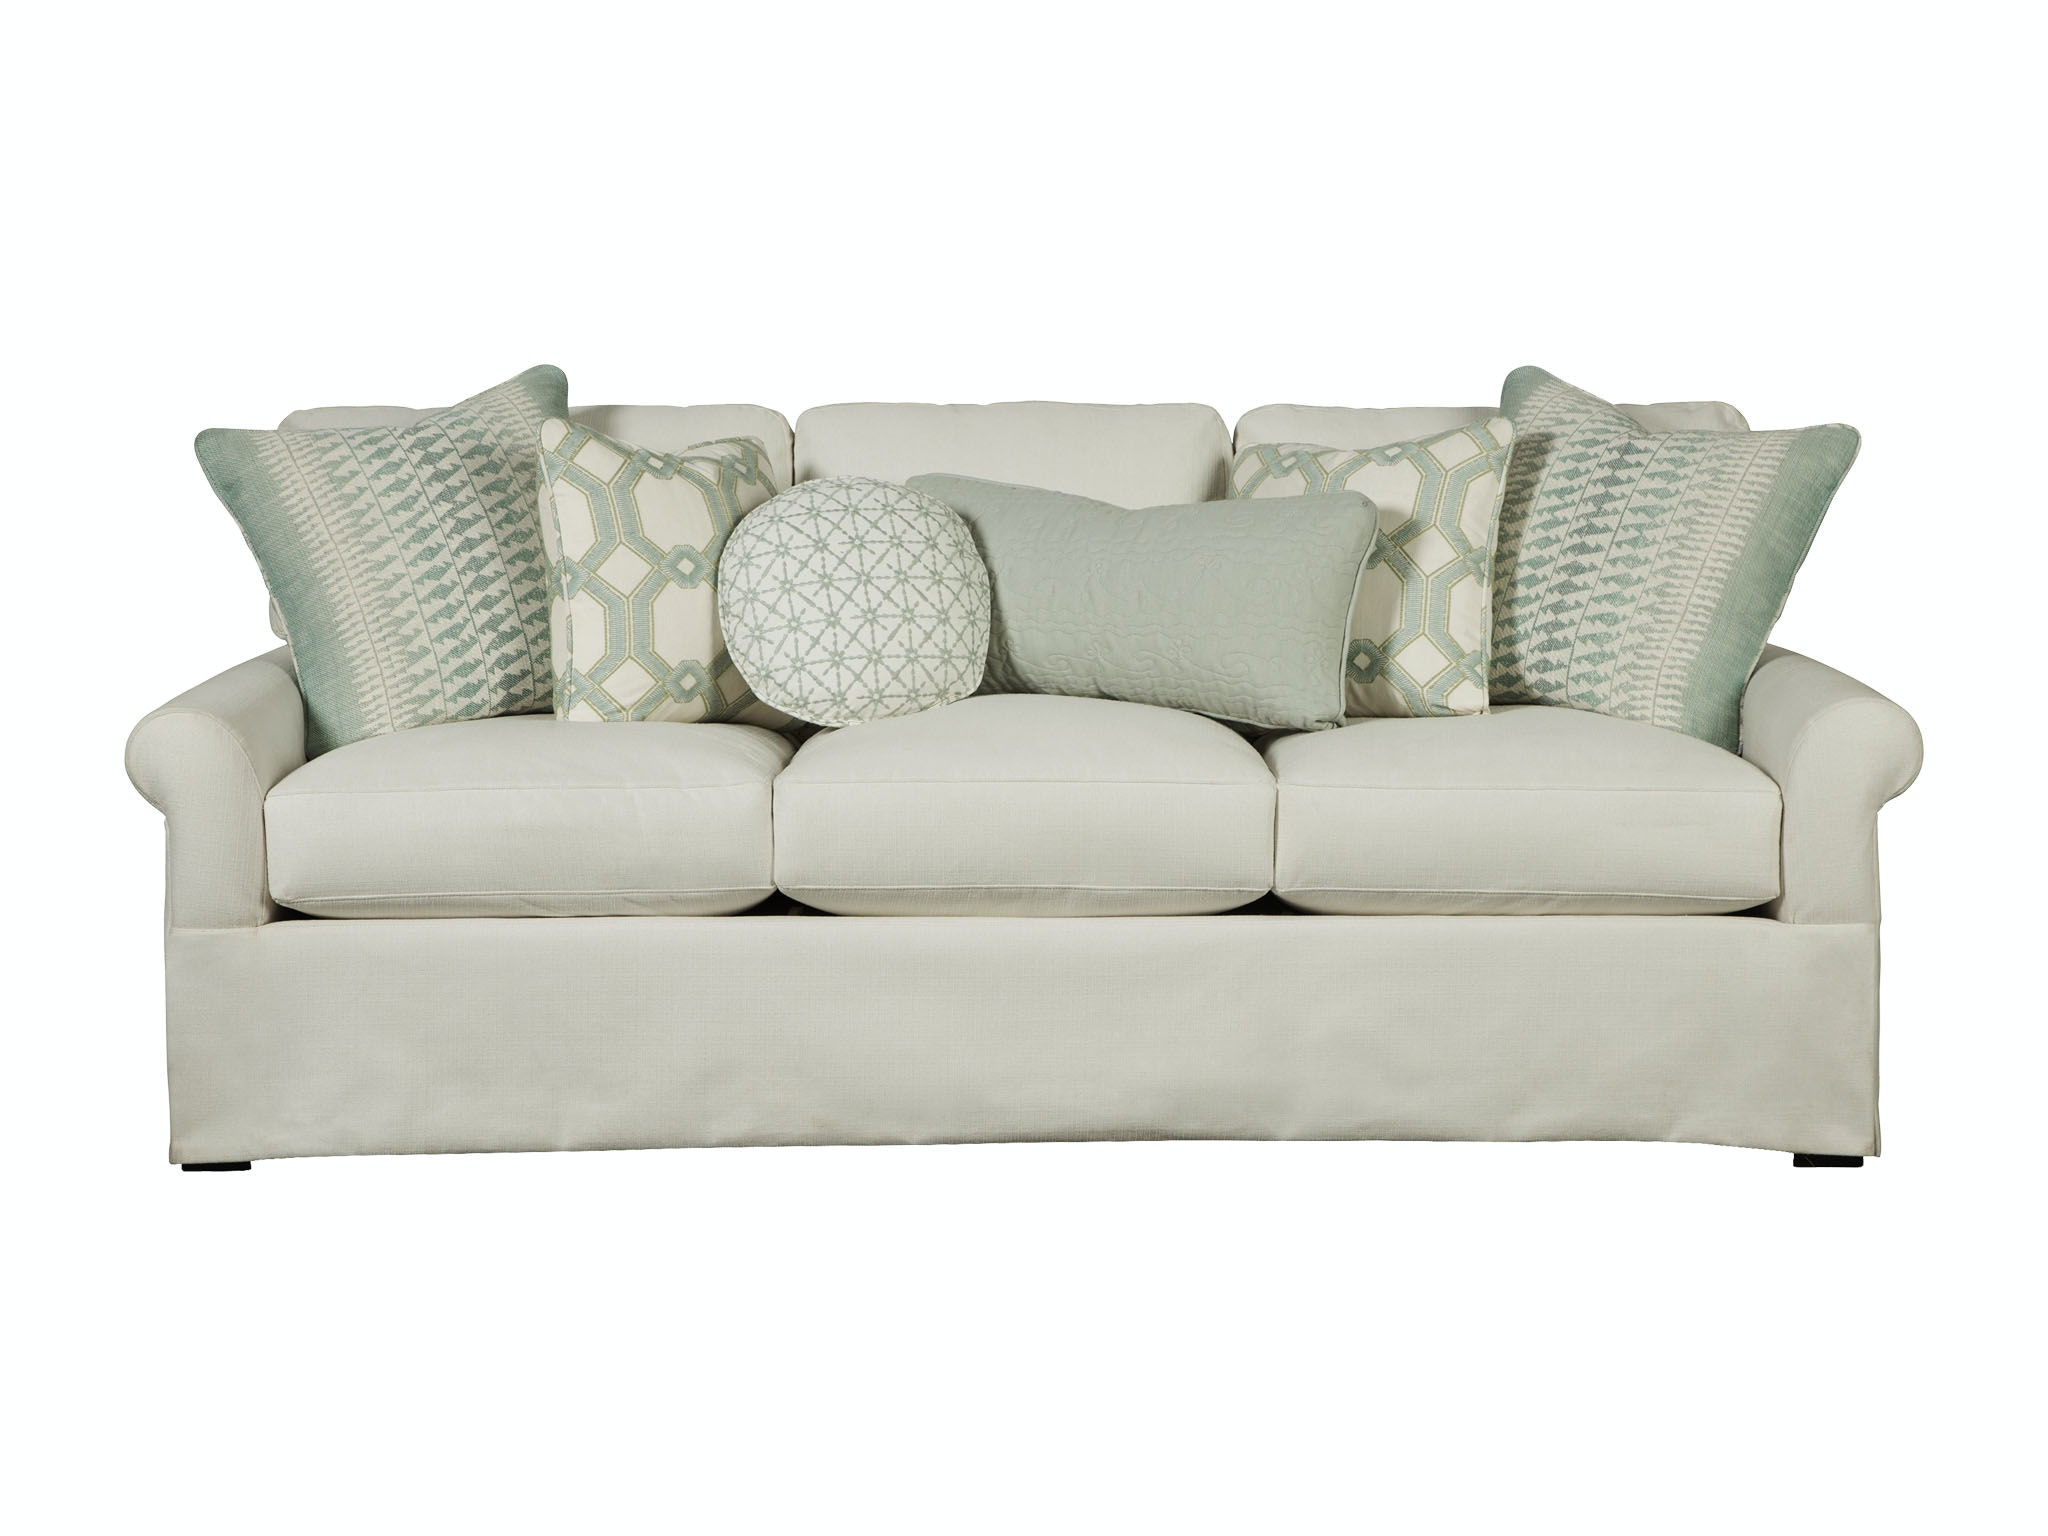 Paula Deen By Craftmaster Sofa P983550BDFABRICS/FINISHES/PIECES SHOWN IN  PHOTOGRAPHY, MAY NOT